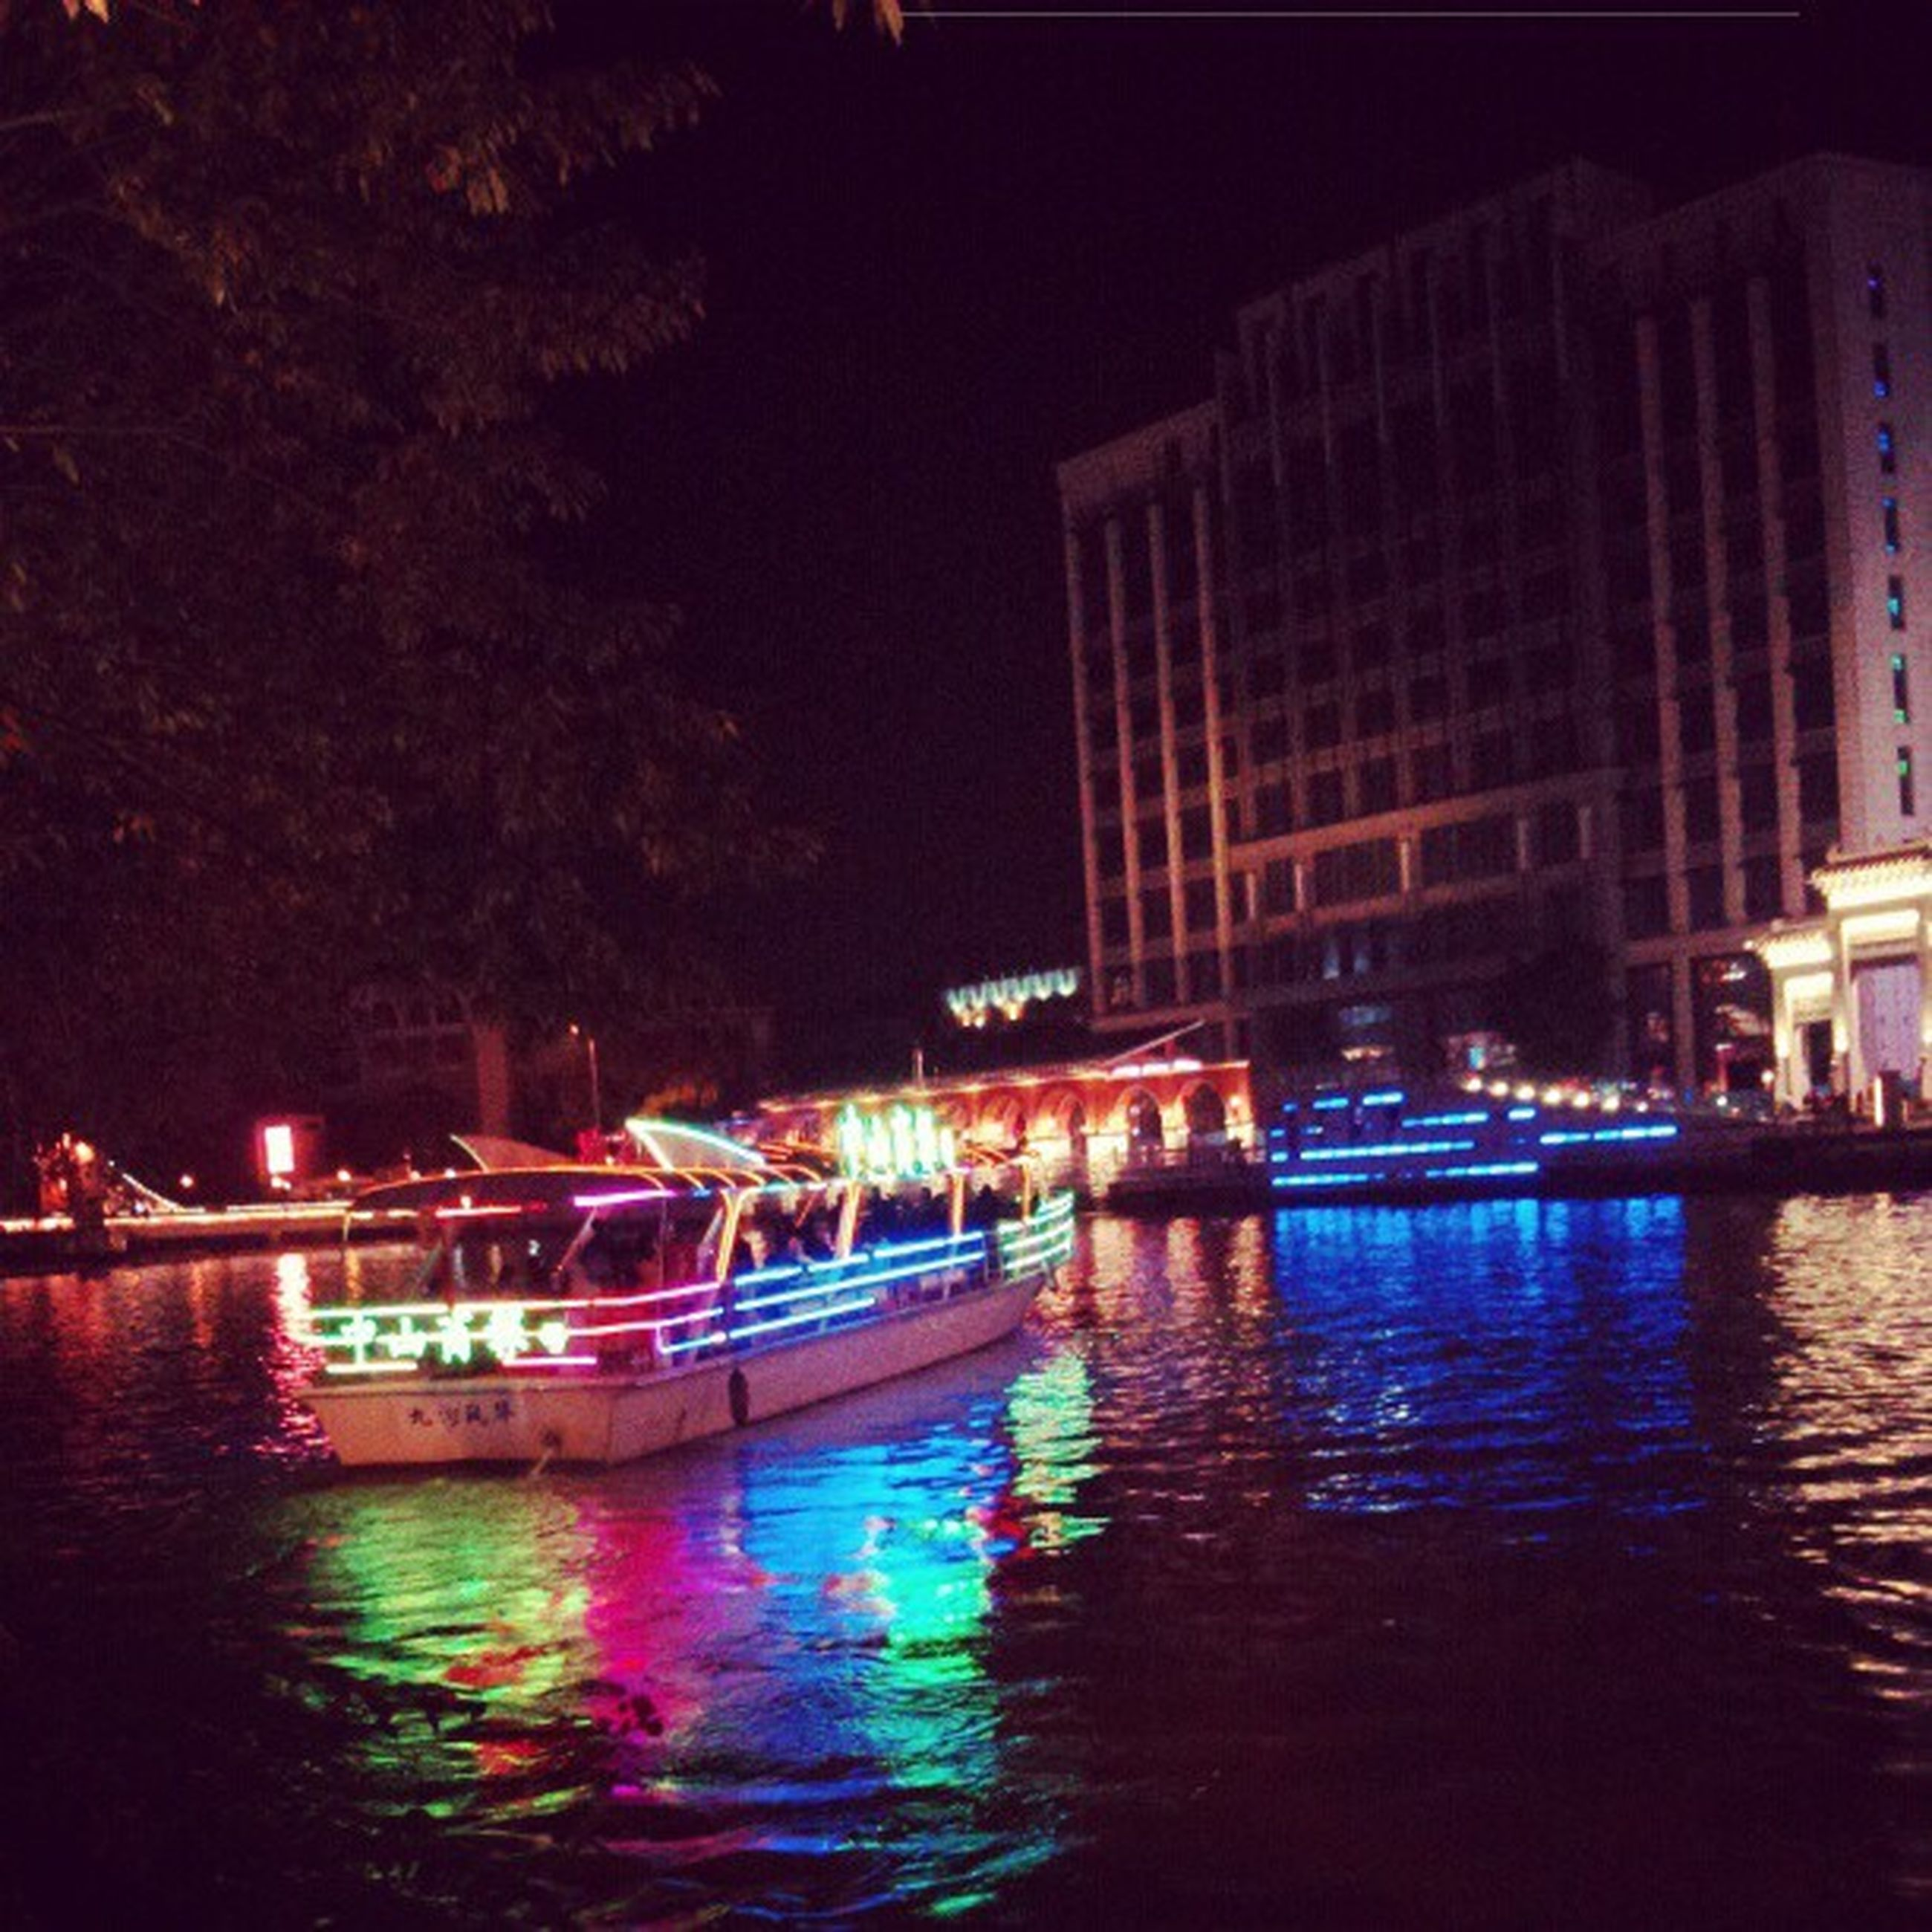 water, waterfront, illuminated, building exterior, architecture, built structure, night, reflection, nautical vessel, boat, transportation, river, moored, mode of transport, city, canal, residential structure, building, sky, clear sky